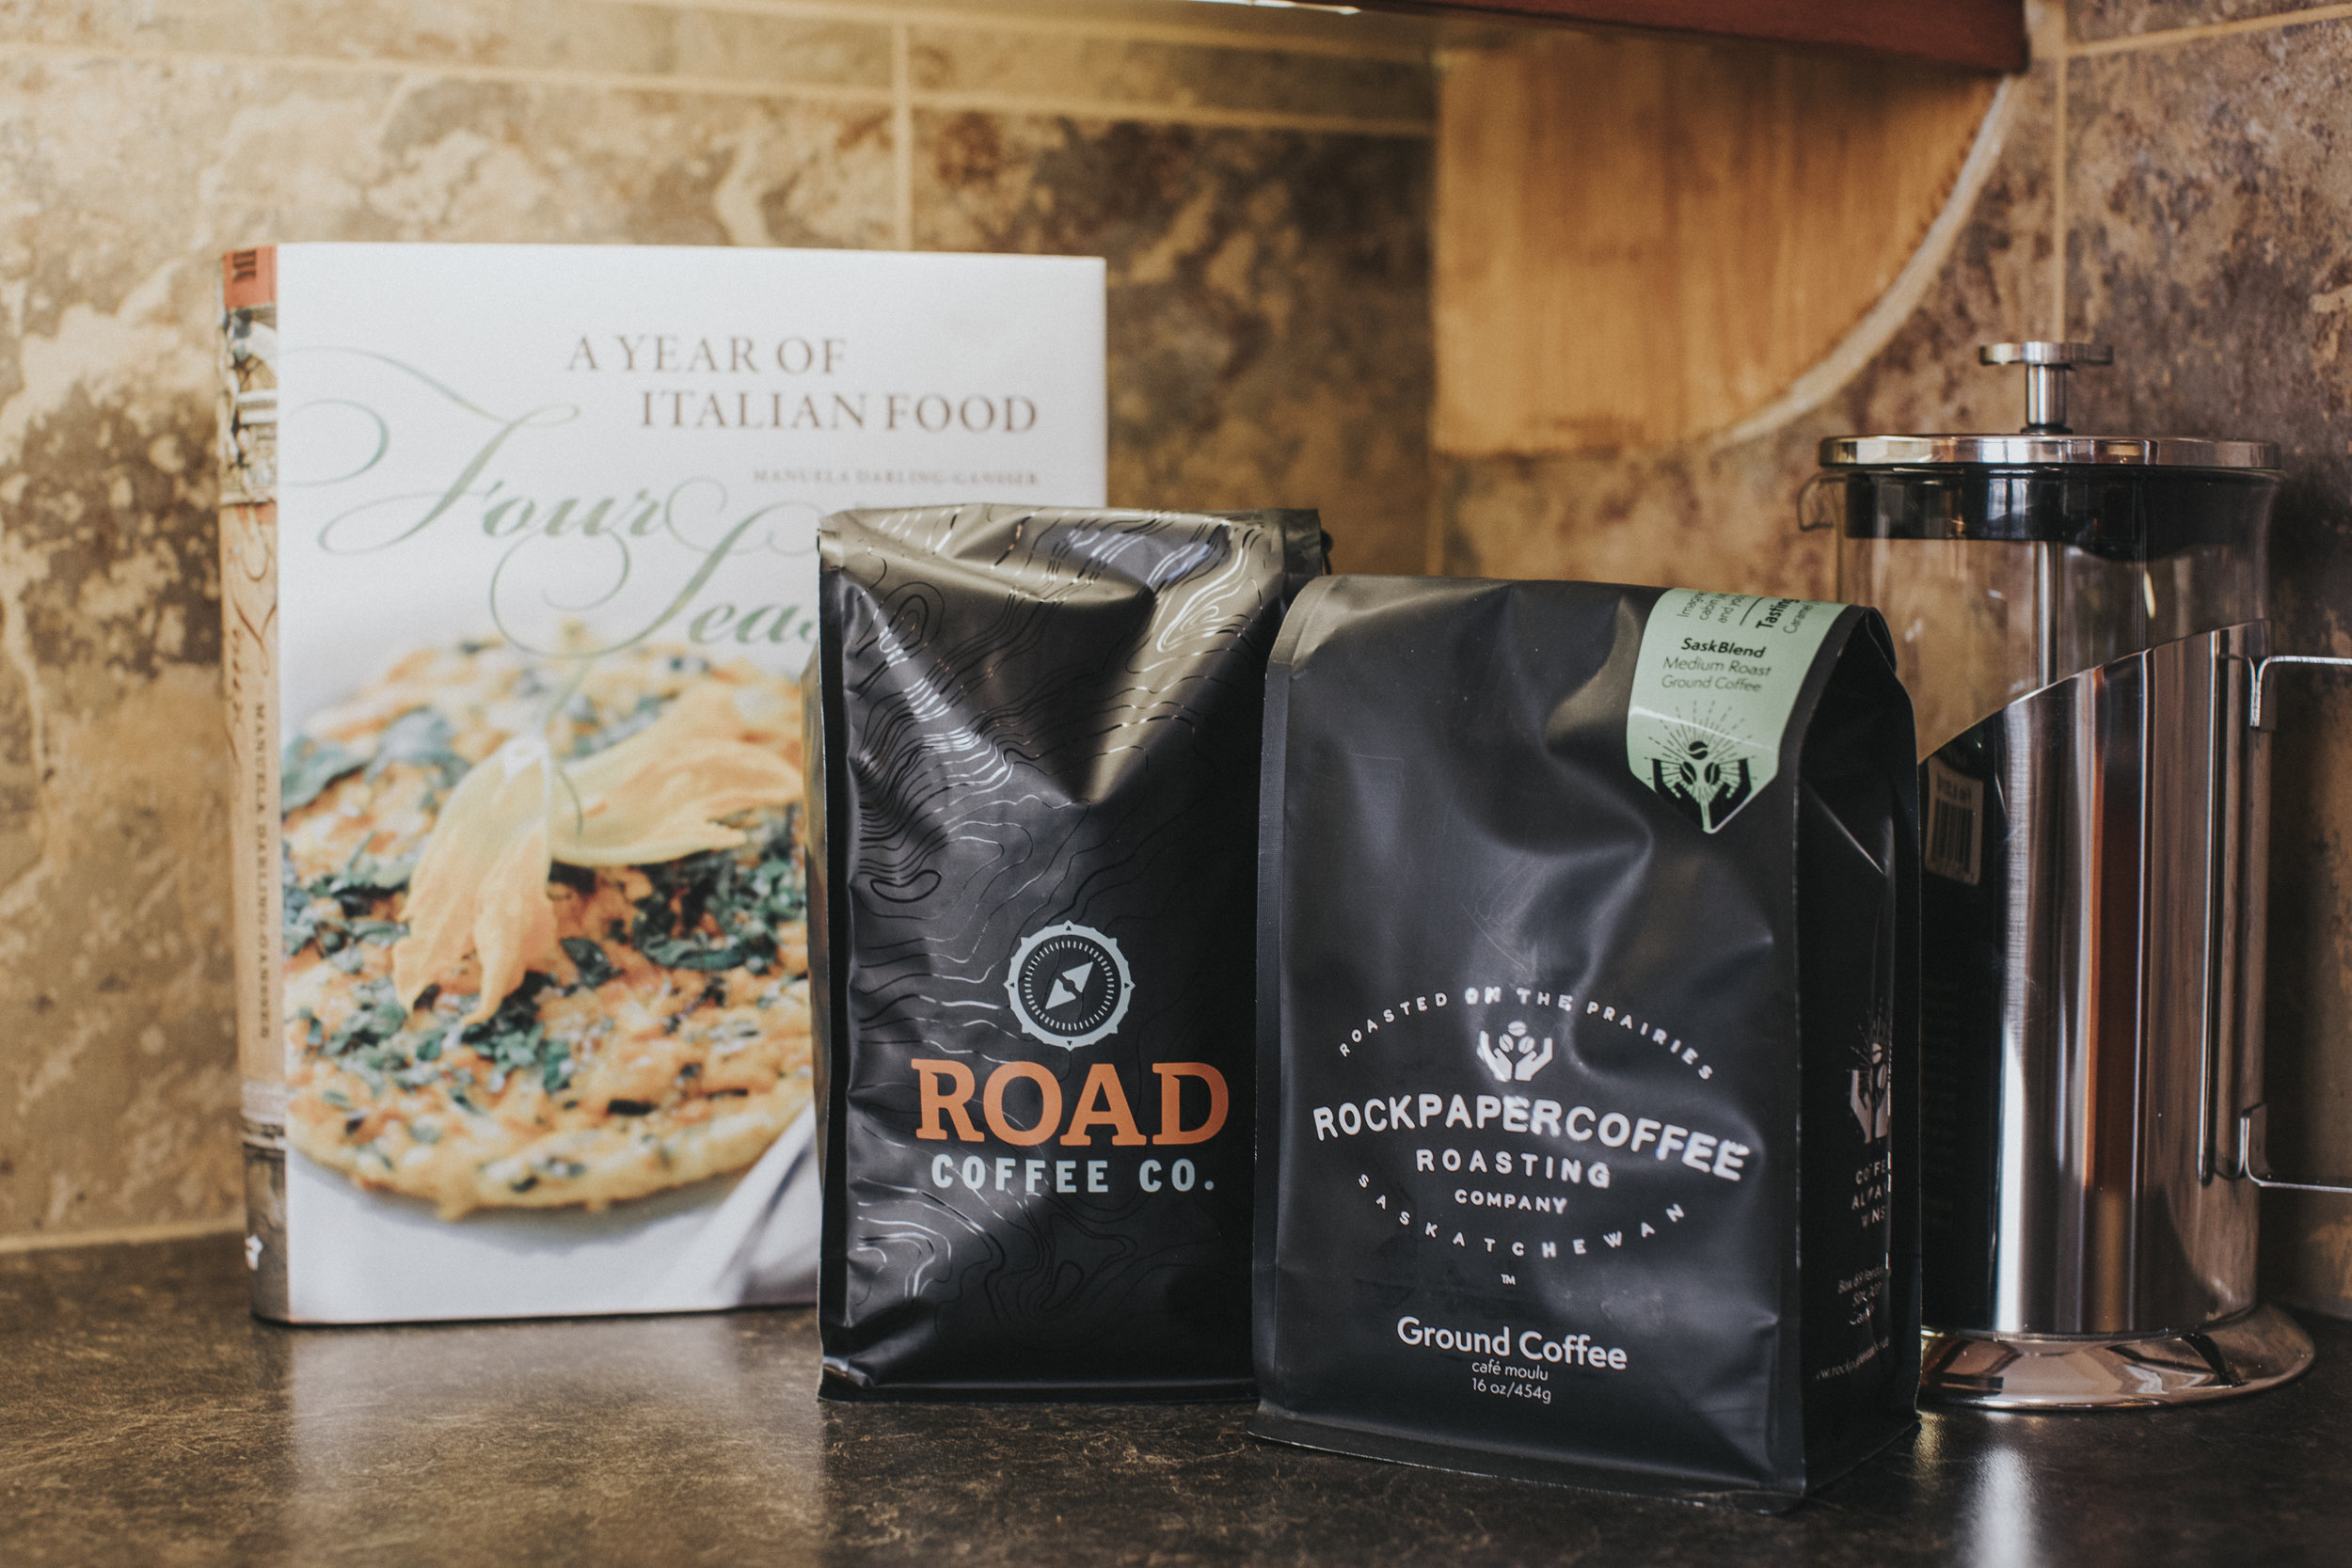 Road Coffee Co . and  Rock Paper Coffee Roasting Company  are always ready for brewing.